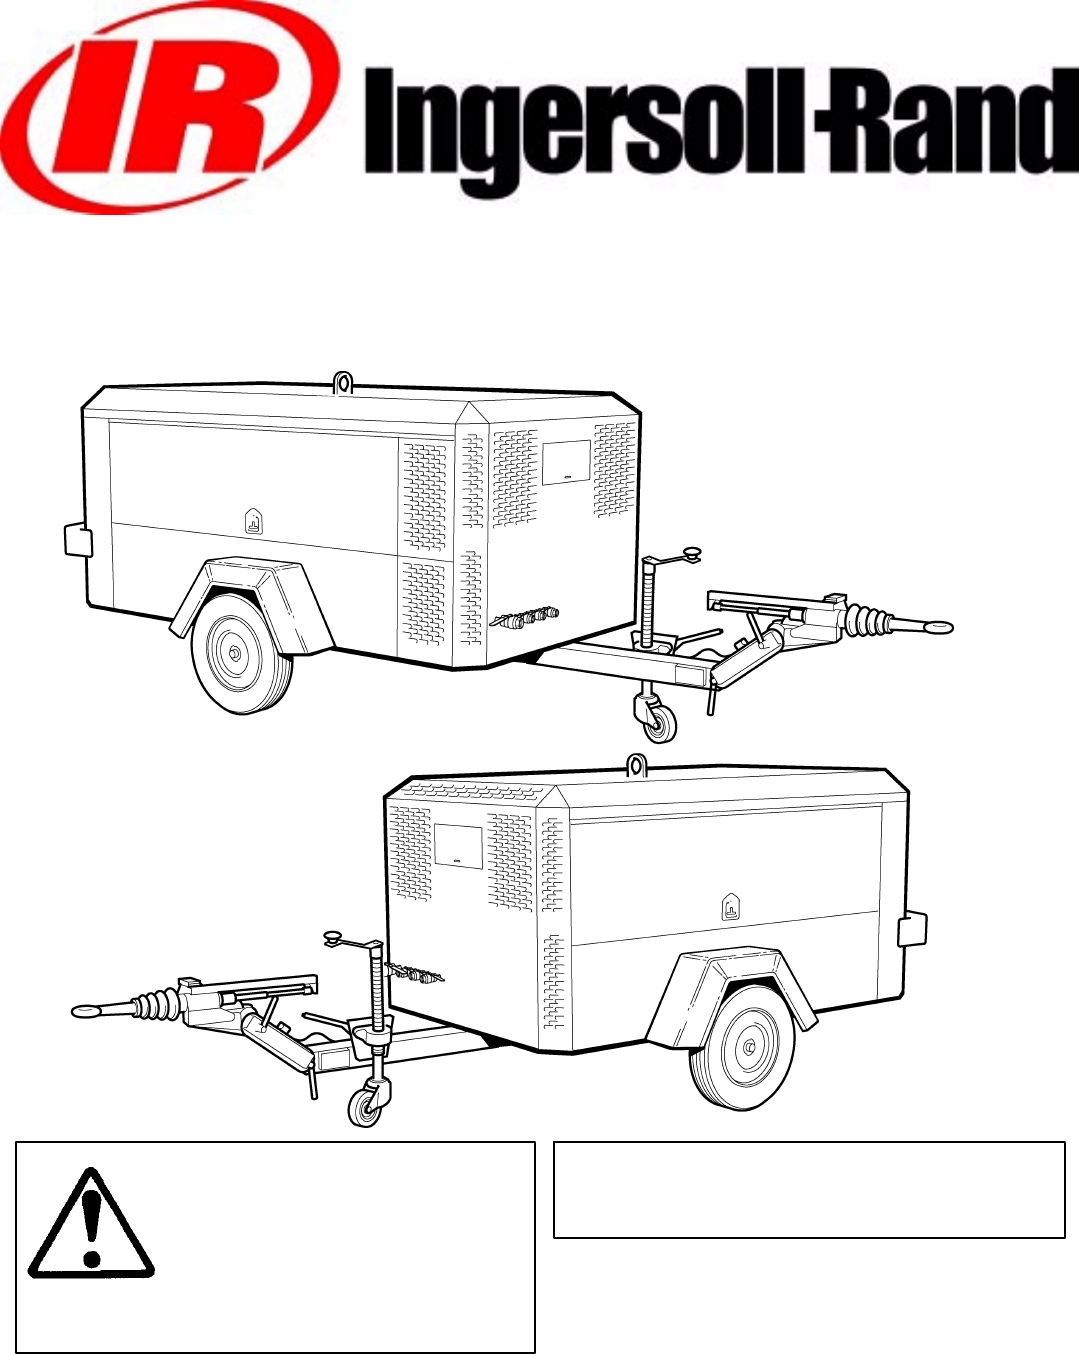 Ingersoll Rand Air Compressor Wiring Diagram